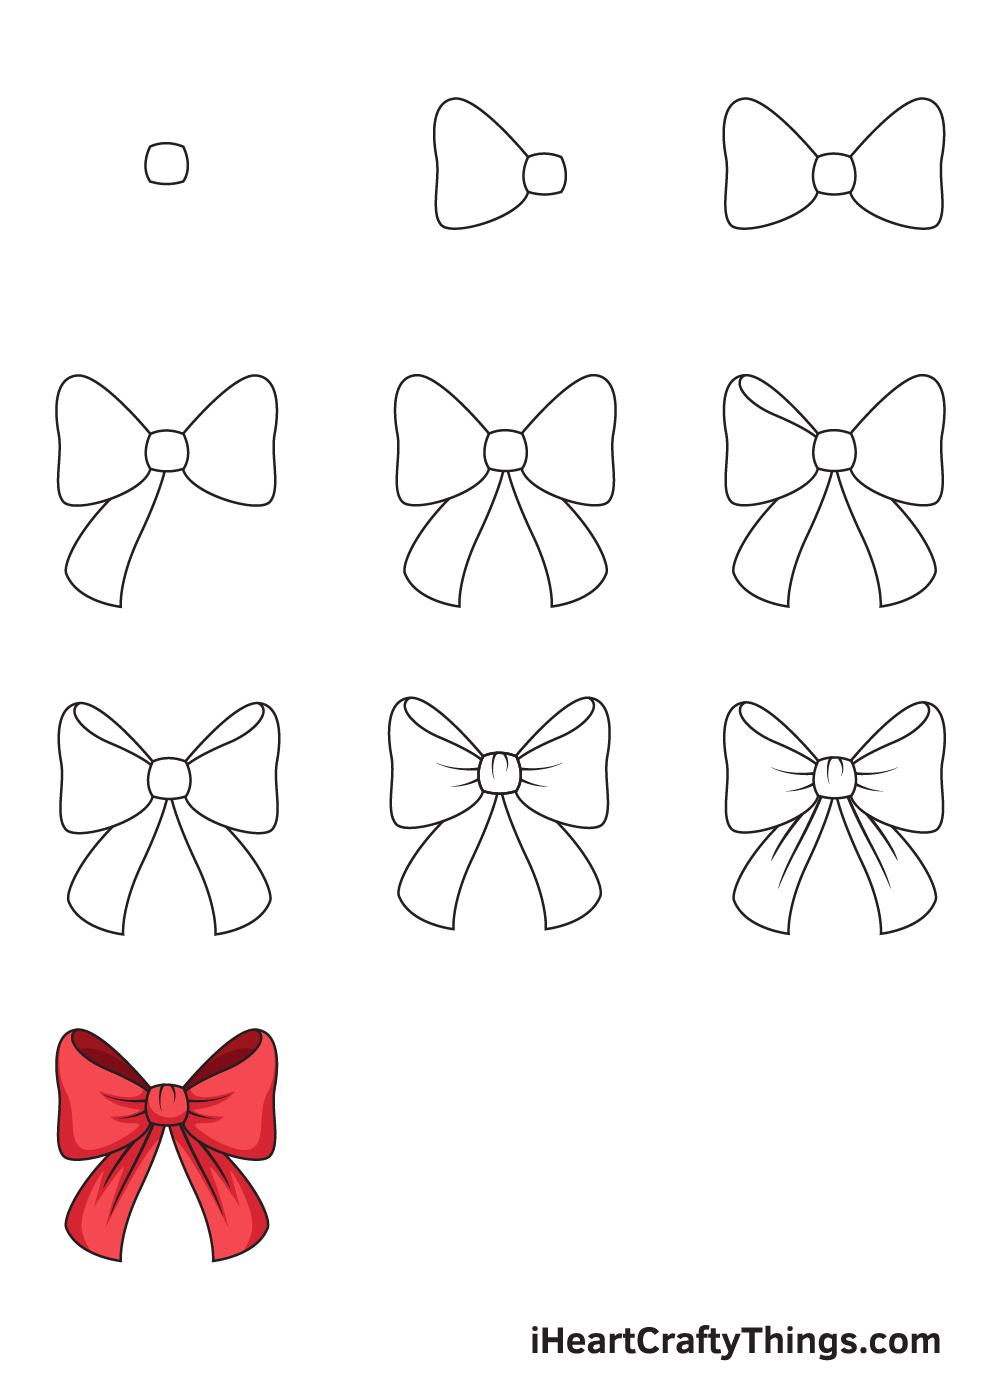 drawing ribbon in 9 steps